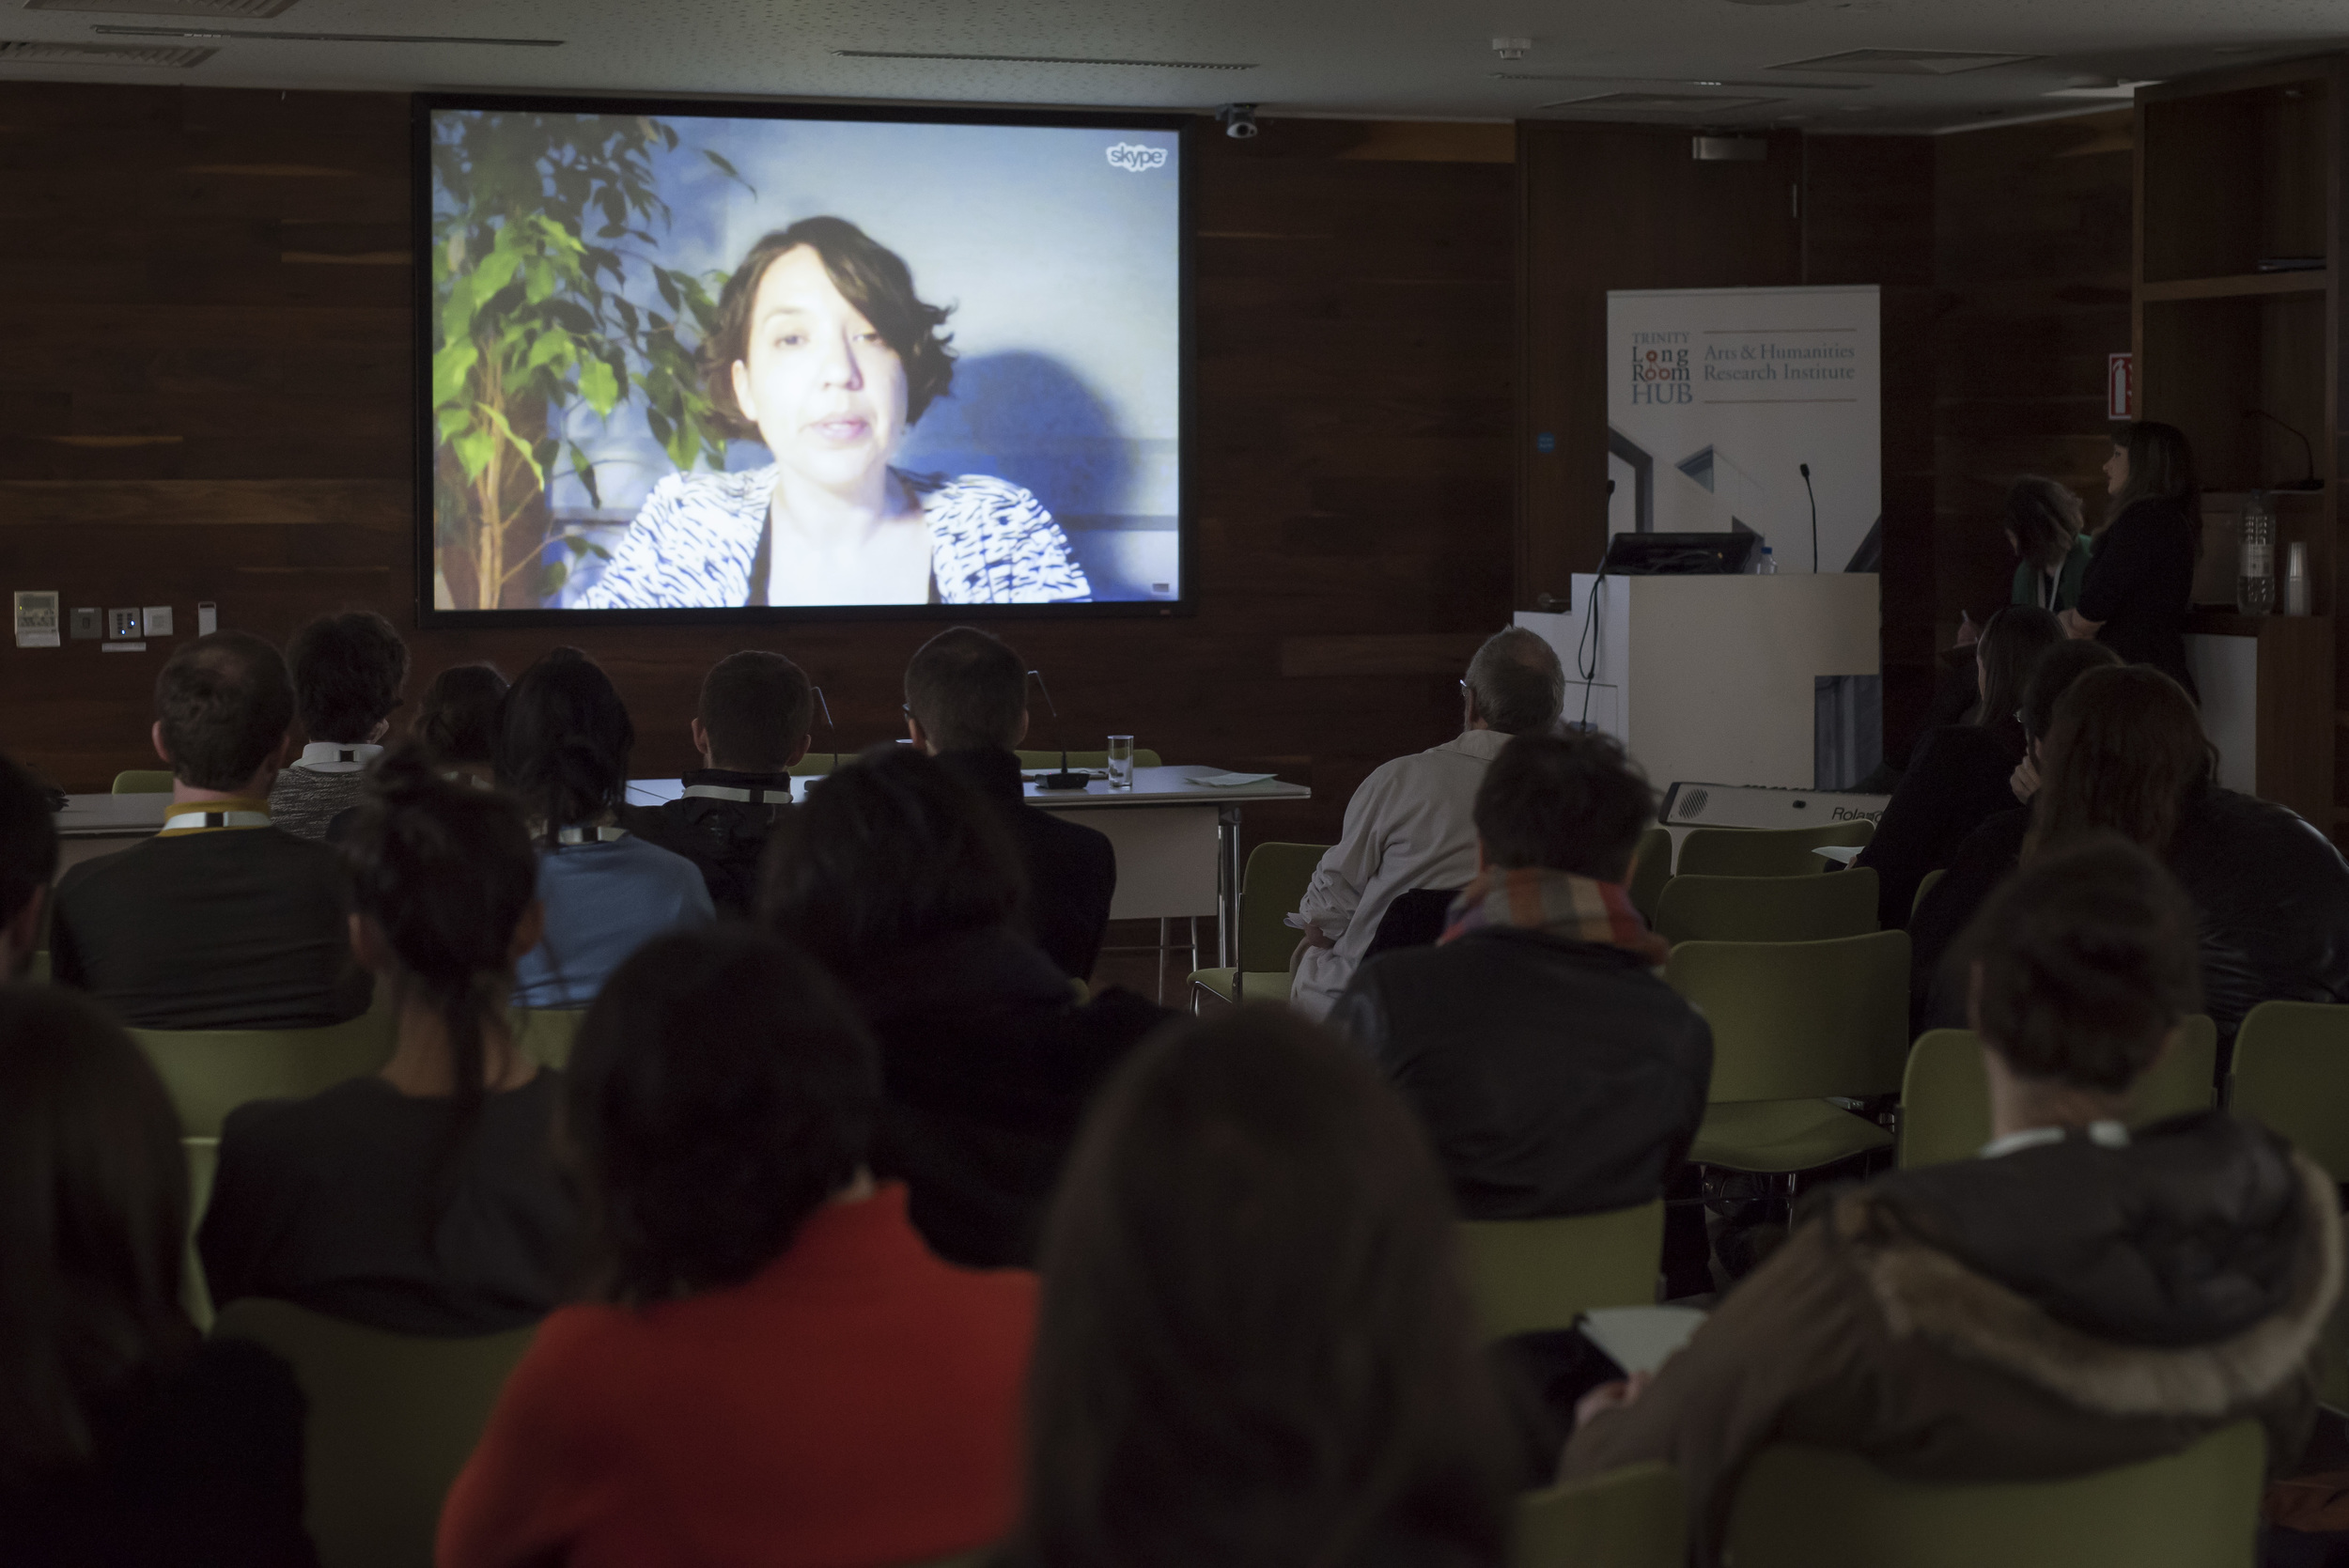 Dr Luna Dolezal speaking via Skype link up at the First International Conference of Ultimology, April 2016. Documentation photography by Louis Haugh.